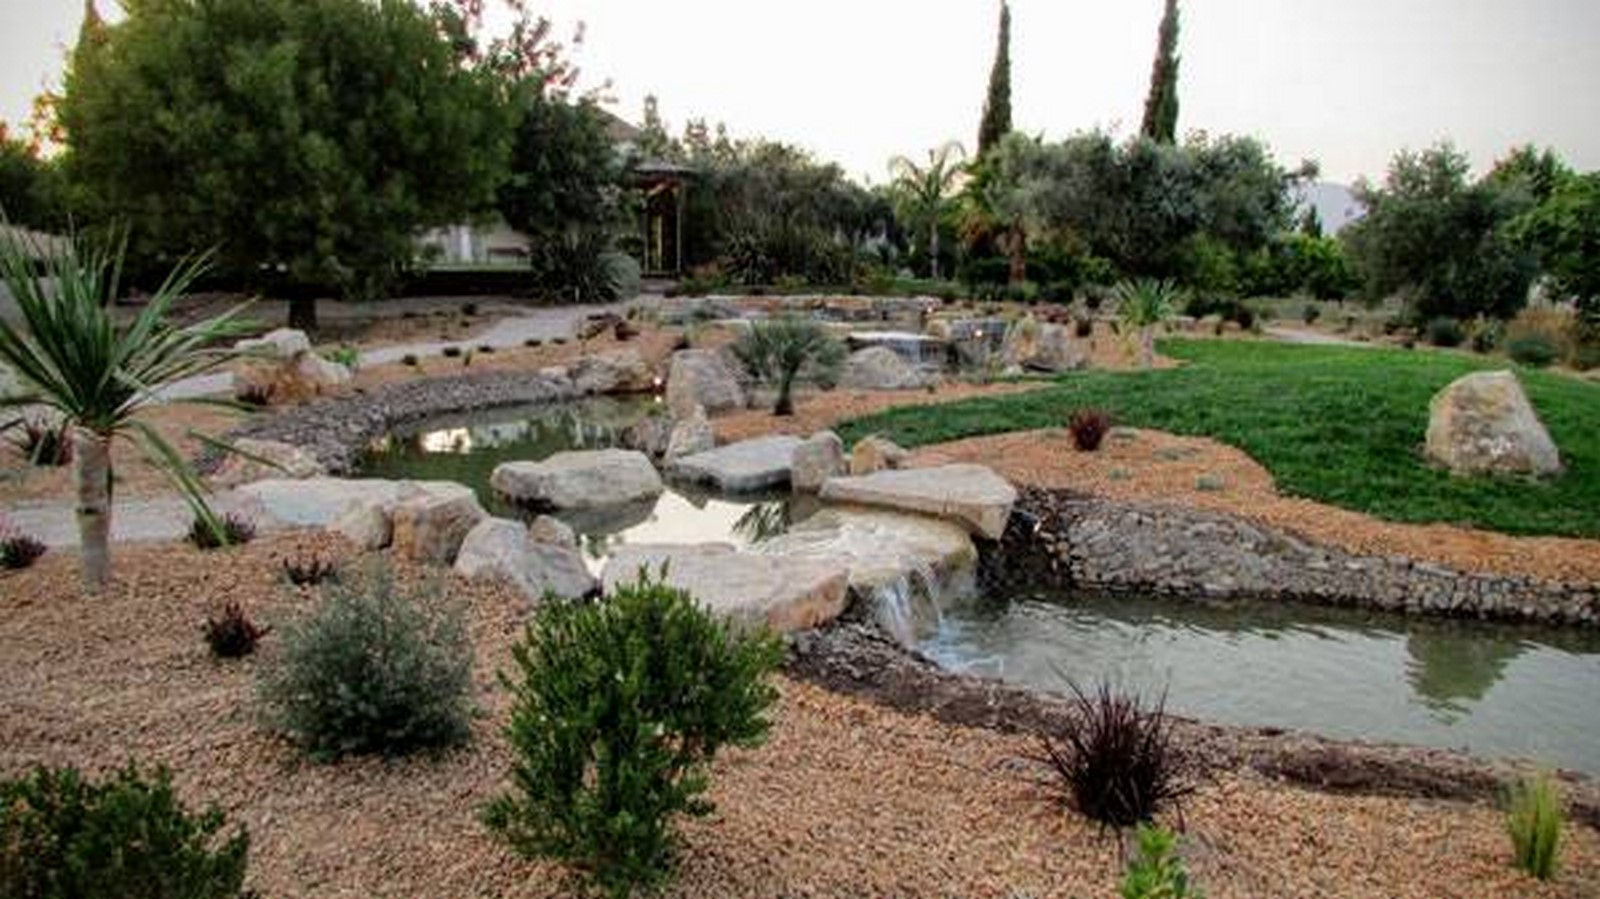 10 practices in Landscape architecture that you did not know were unsustainable - Sheet3